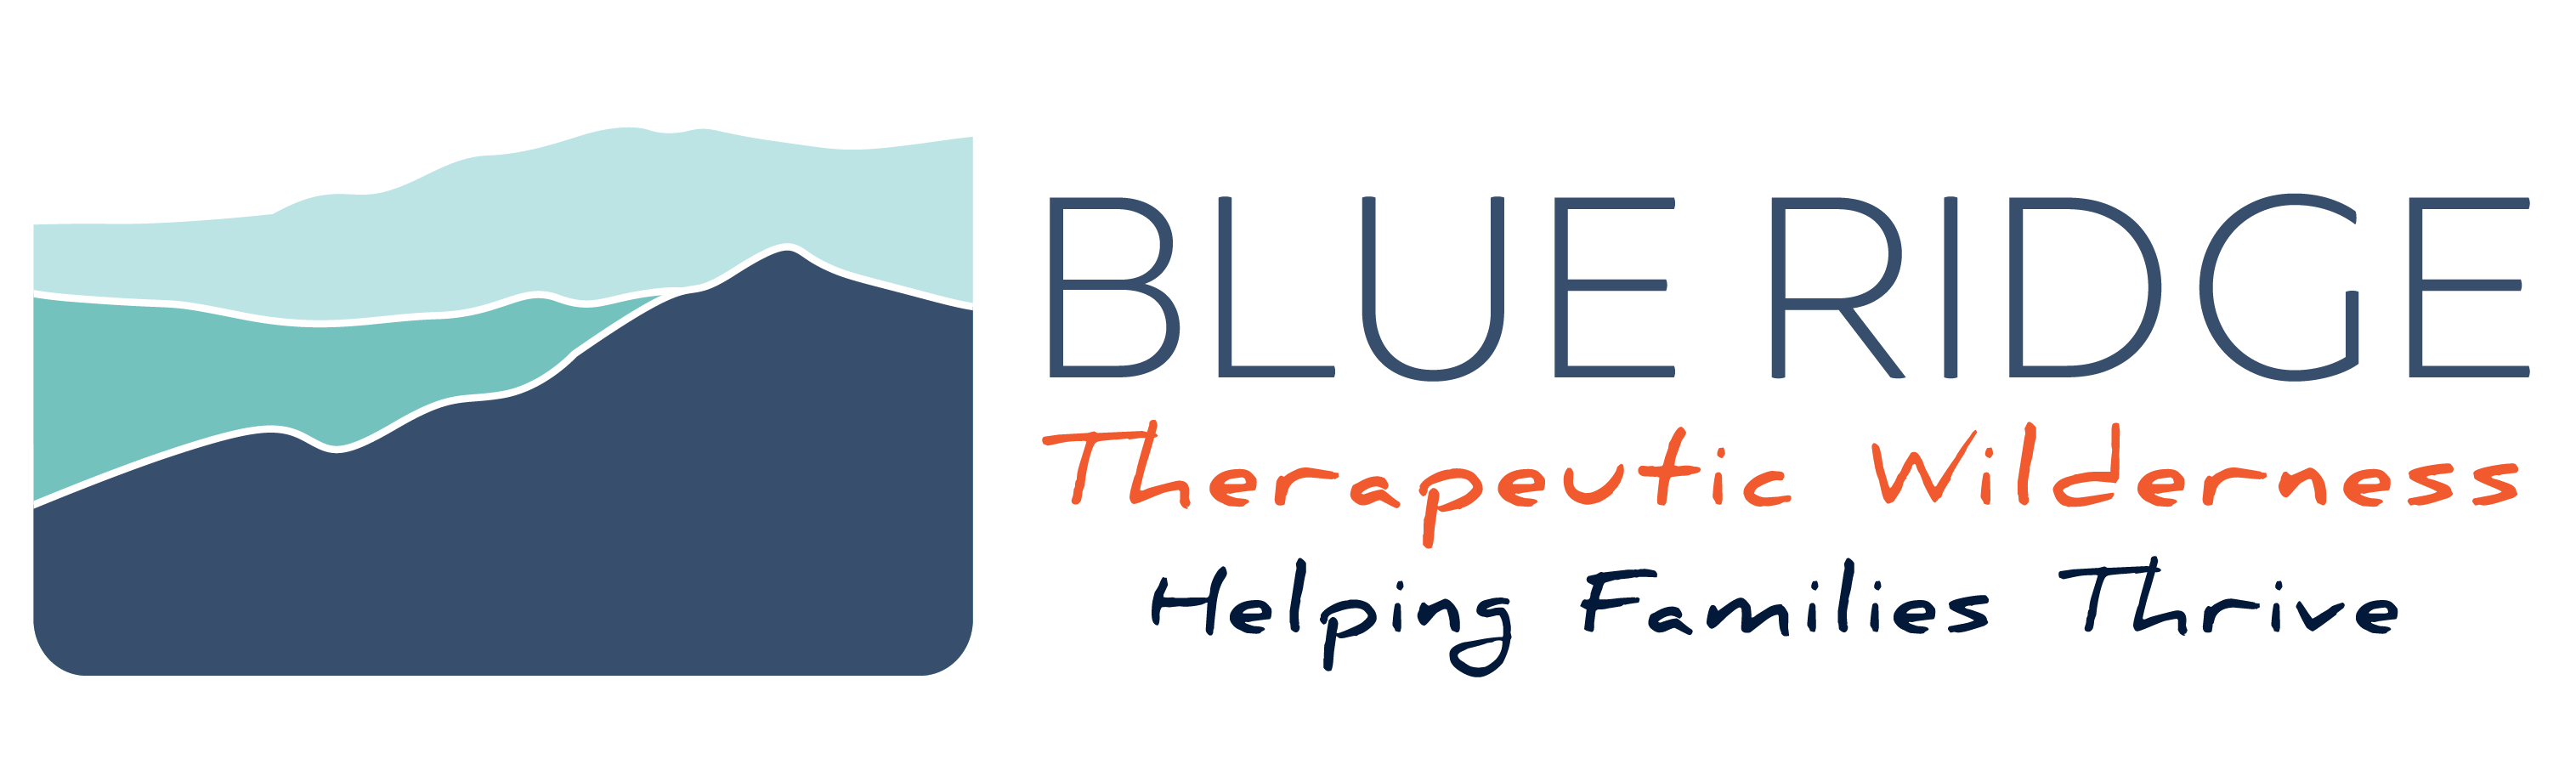 Blue Ridge Therapeutic Wilderness logo